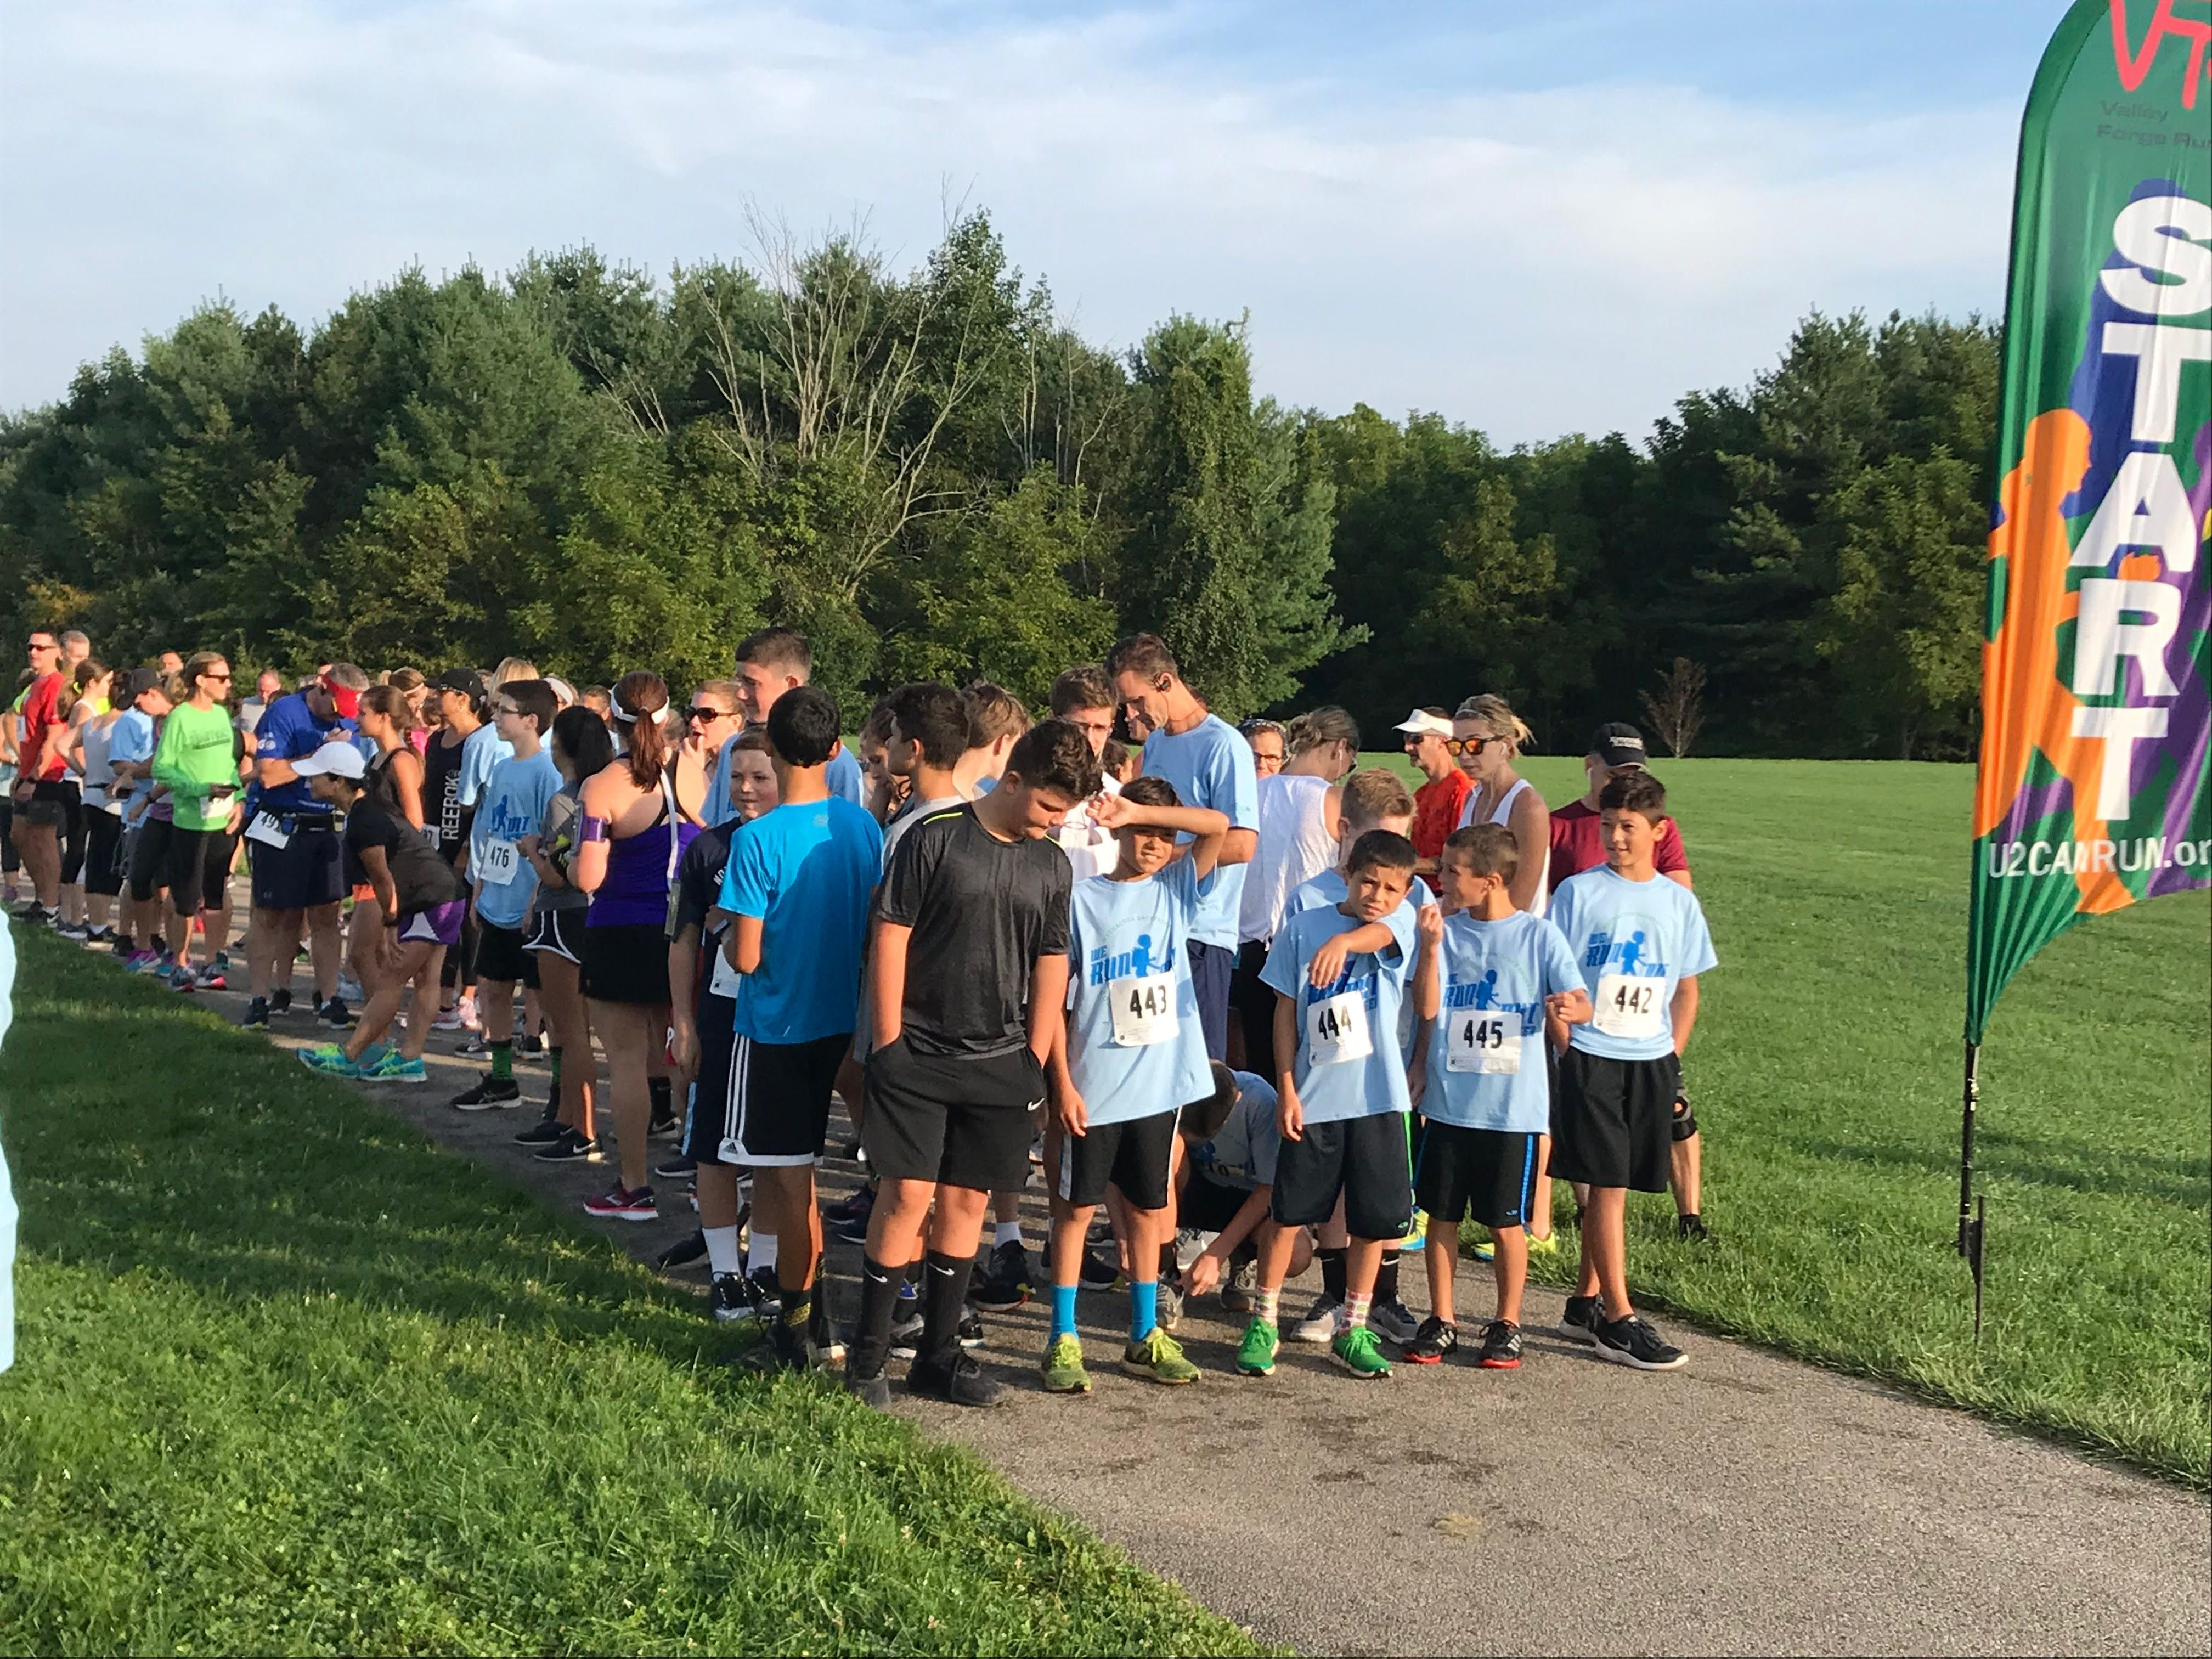 2nd Annual We Run Out Hunger 5K